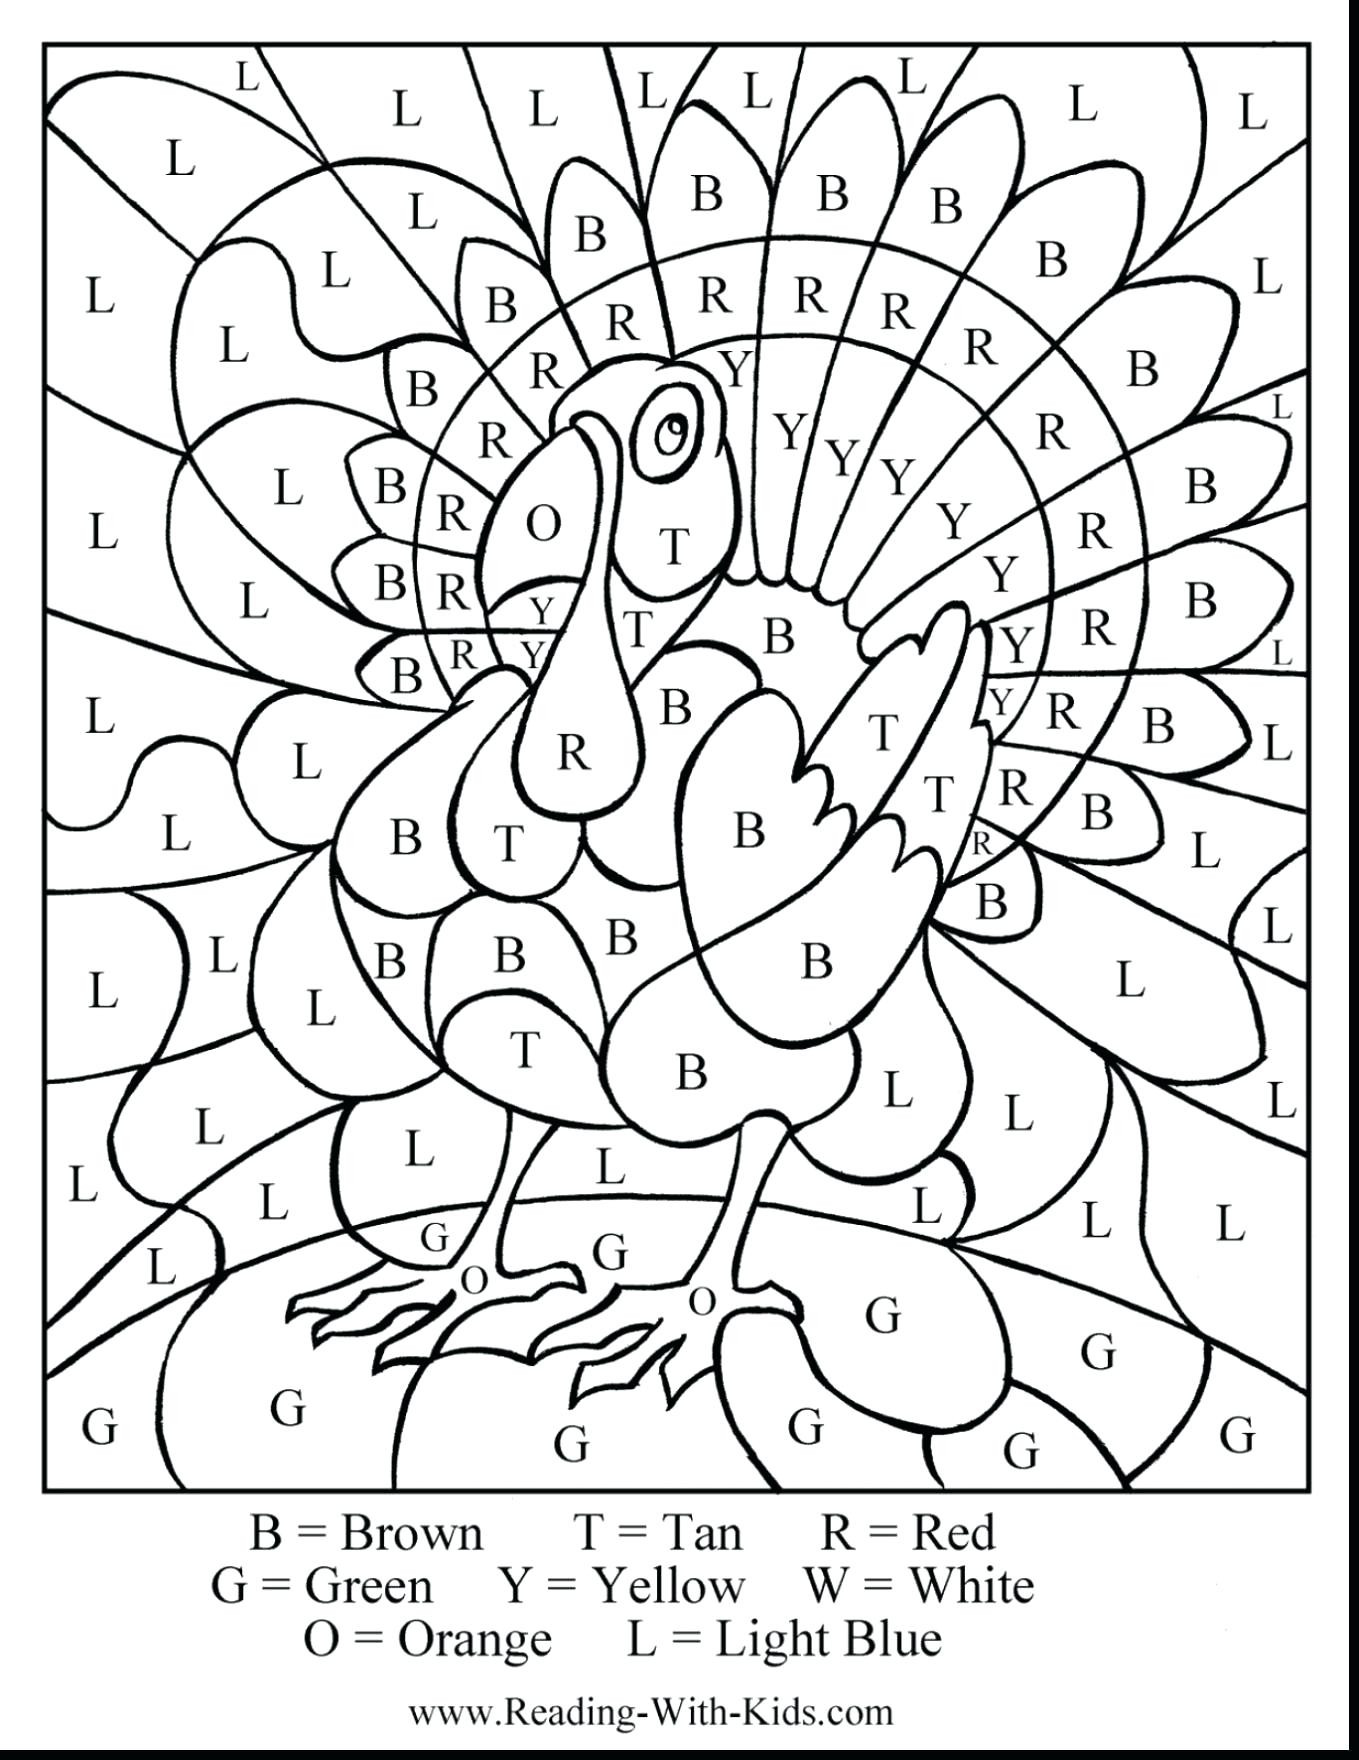 Thanksgiving Math Coloring Worksheets Mystery Coloring Sheets Volcano for Boys Free Grid